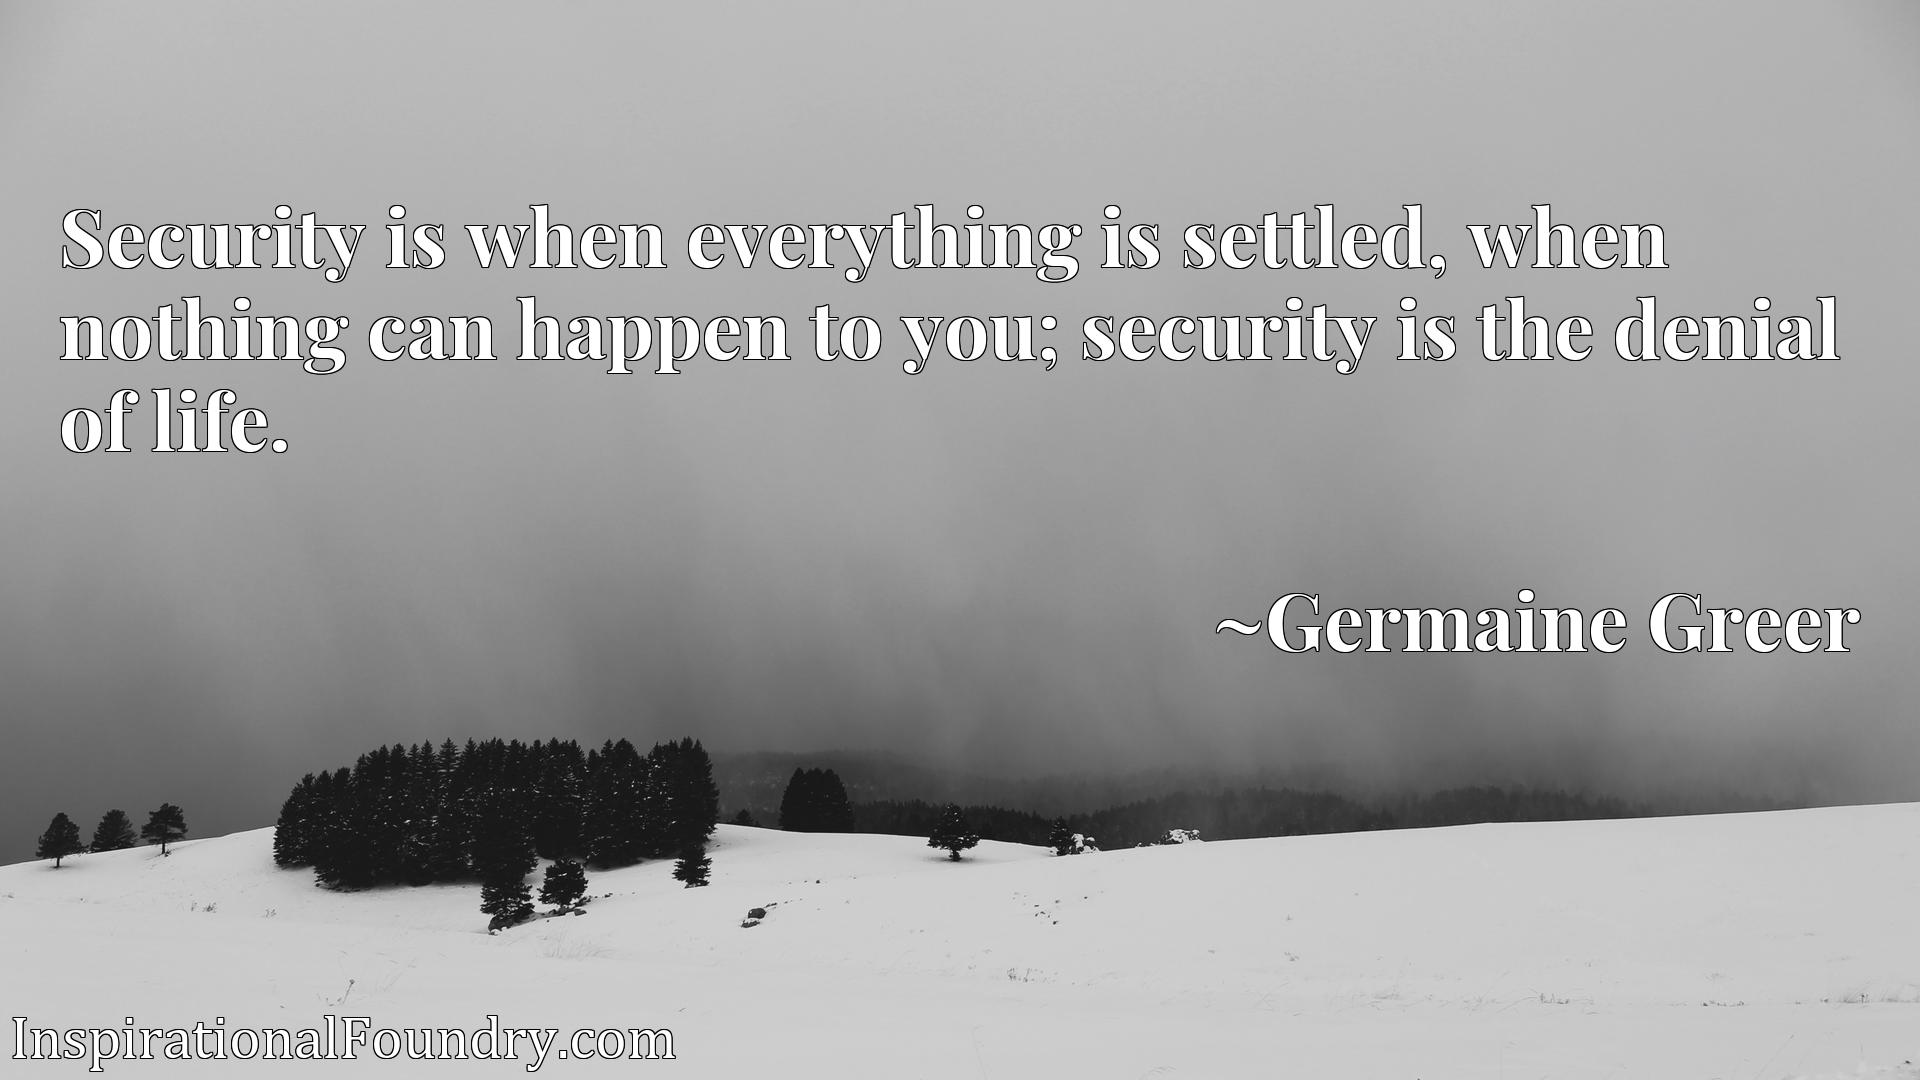 Security is when everything is settled, when nothing can happen to you; security is the denial of life.